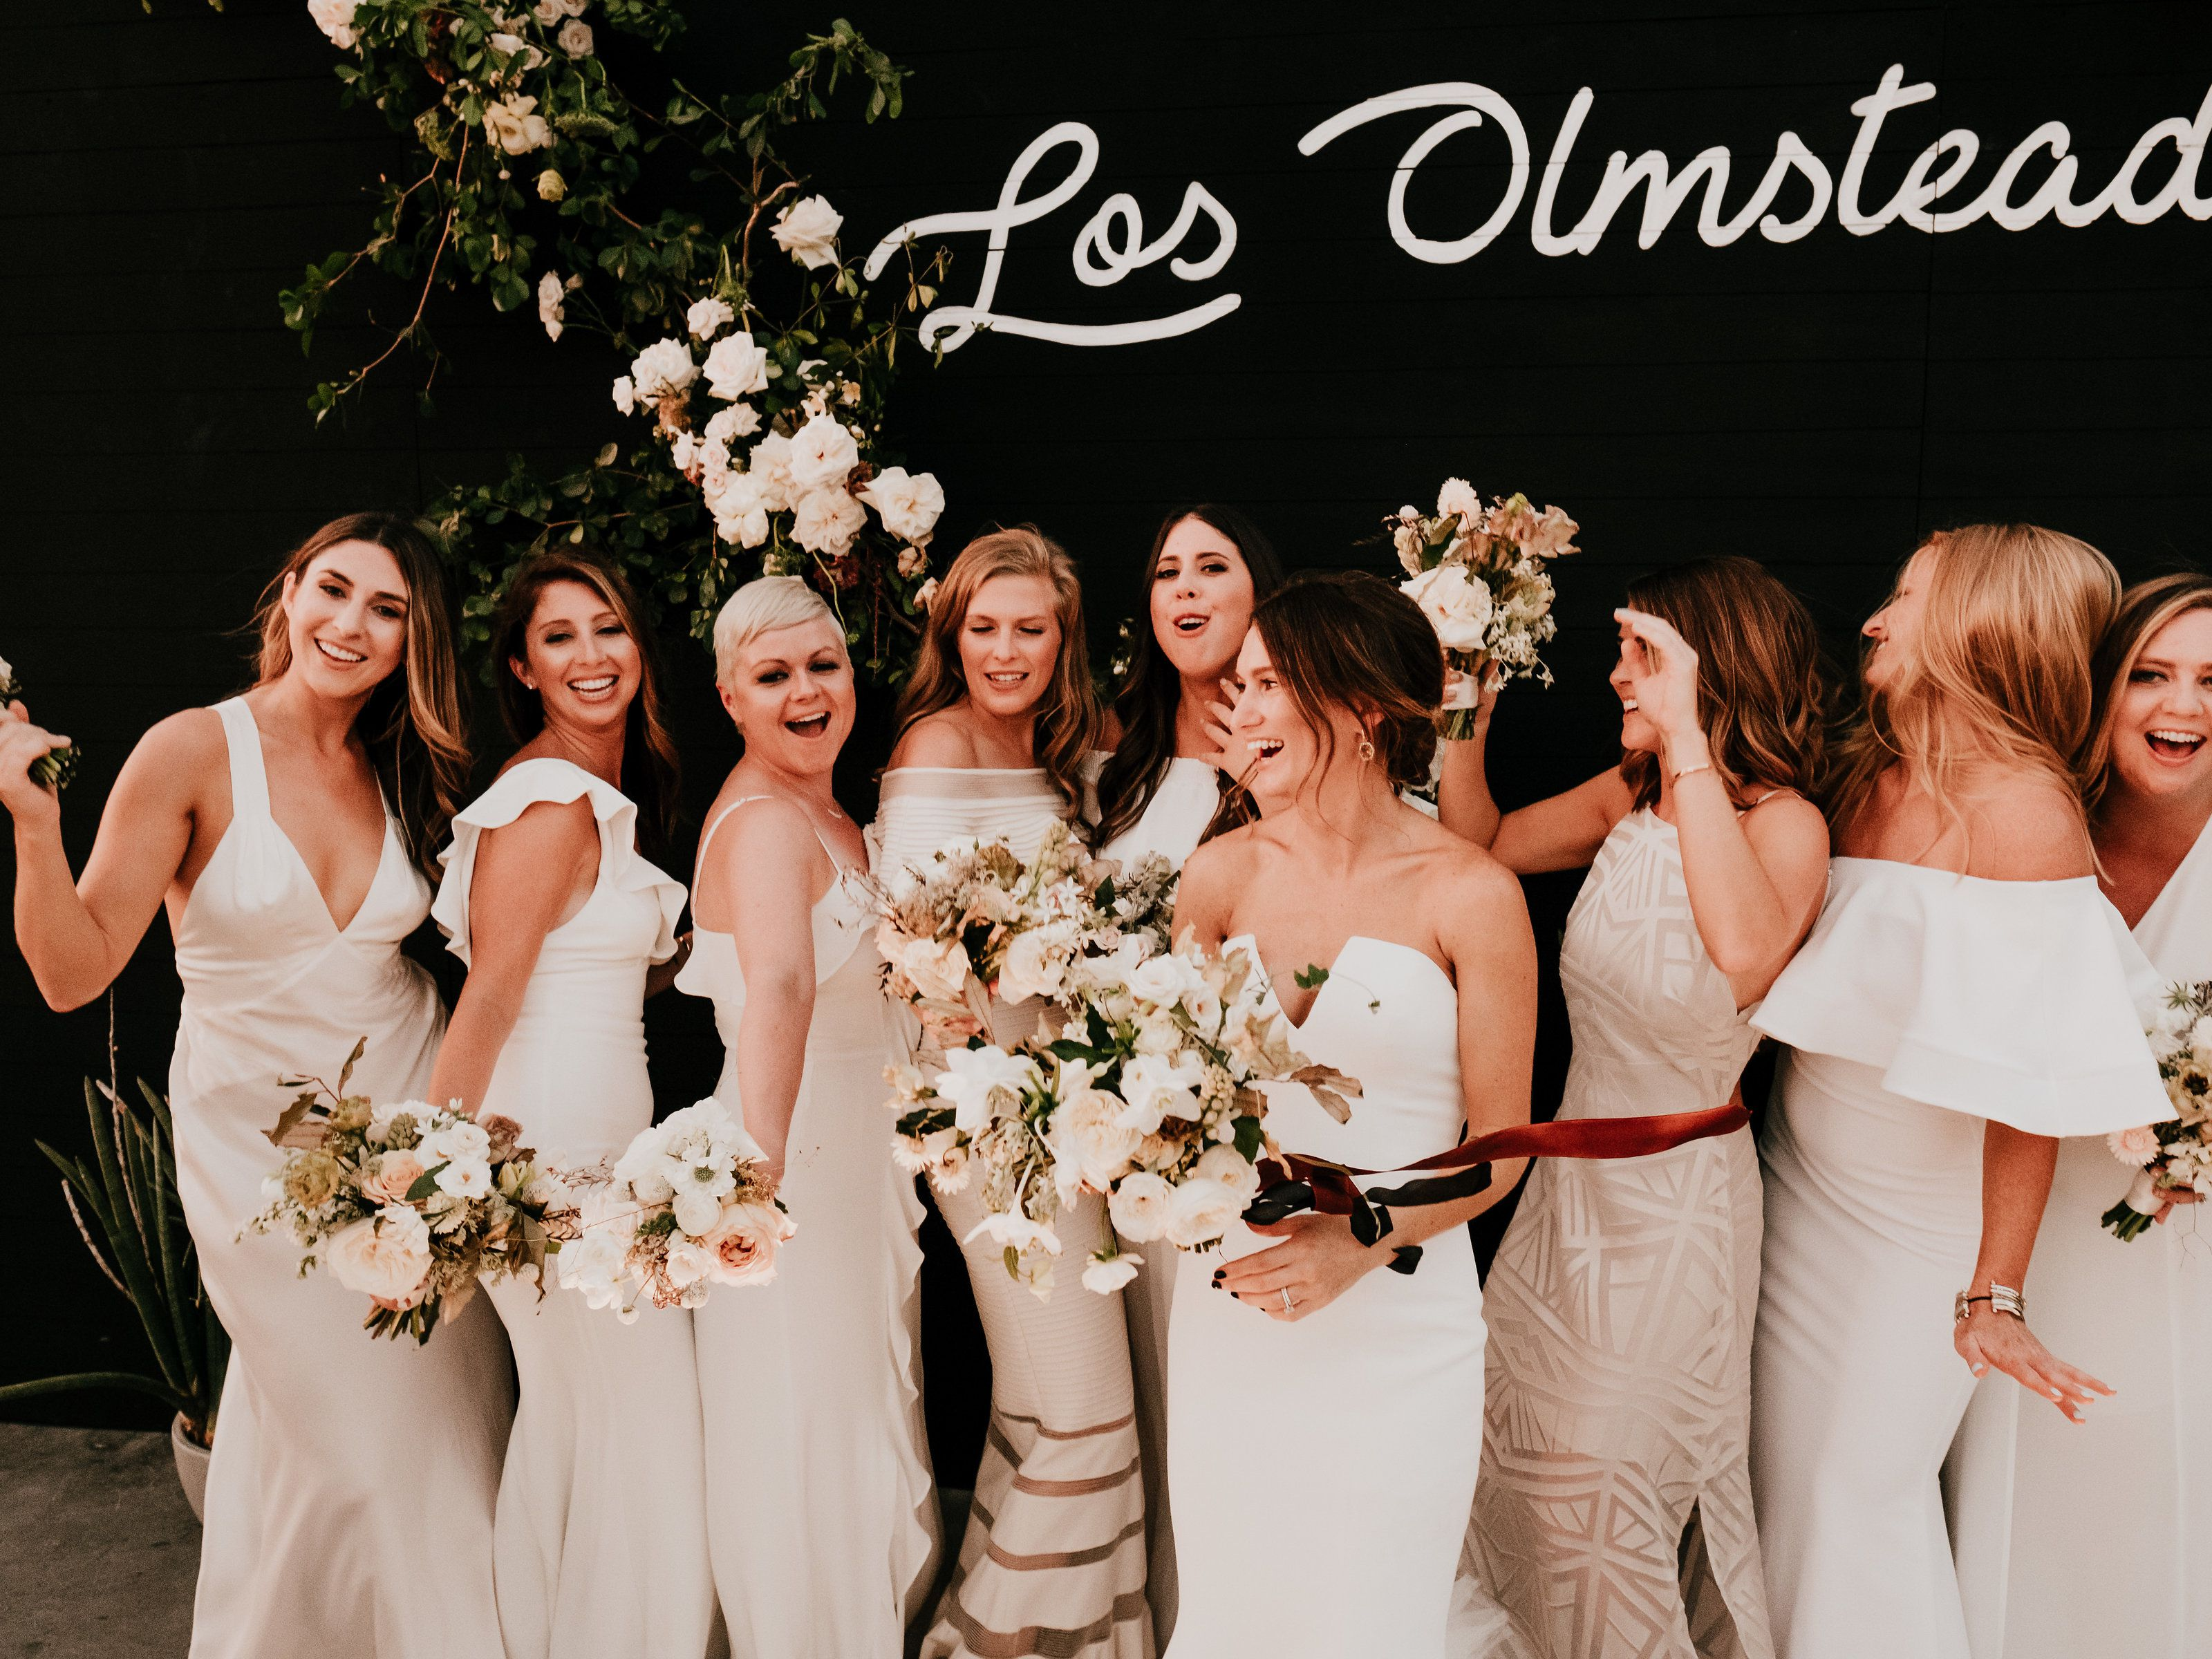 Who Pays For The Wedding.Who Pays For The Bridesmaid Dresses